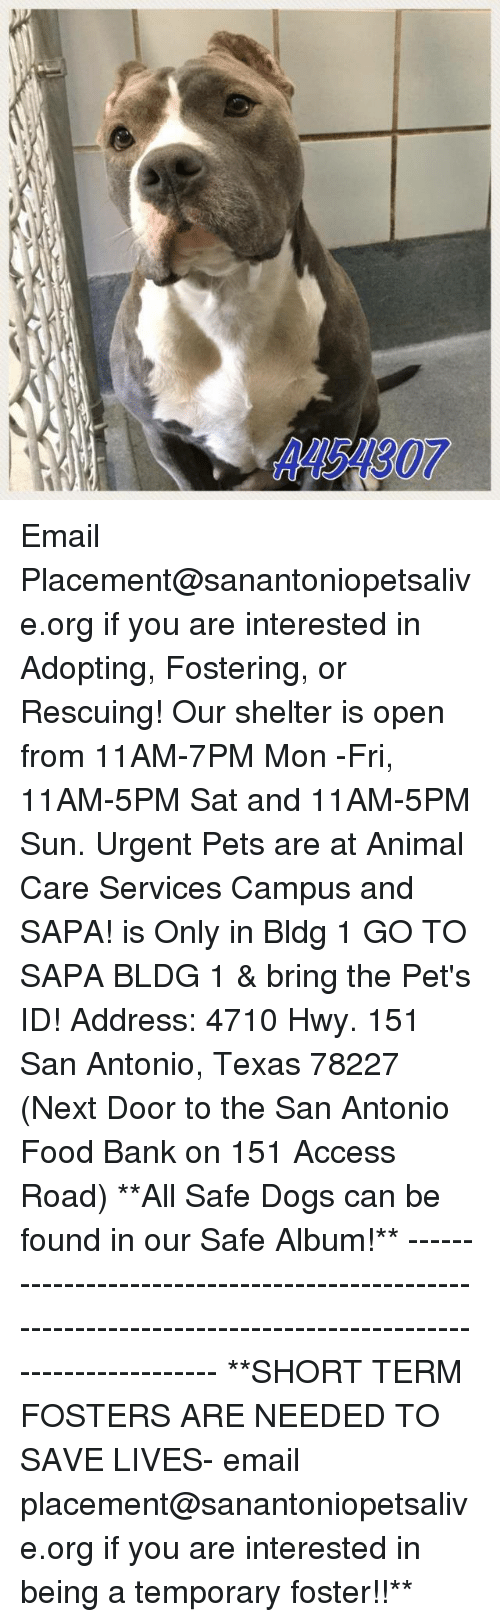 Dogs, Food, and Memes: A454307 Email Placement@sanantoniopetsalive.org if you are interested in Adopting, Fostering, or Rescuing!  Our shelter is open from 11AM-7PM Mon -Fri, 11AM-5PM Sat and 11AM-5PM Sun.  Urgent Pets are at Animal Care Services Campus and SAPA! is Only in Bldg 1 GO TO SAPA BLDG 1 & bring the Pet's ID! Address: 4710 Hwy. 151 San Antonio, Texas 78227 (Next Door to the San Antonio Food Bank on 151 Access Road)  **All Safe Dogs can be found in our Safe Album!** ---------------------------------------------------------------------------------------------------------- **SHORT TERM FOSTERS ARE NEEDED TO SAVE LIVES- email placement@sanantoniopetsalive.org if you are interested in being a temporary foster!!**